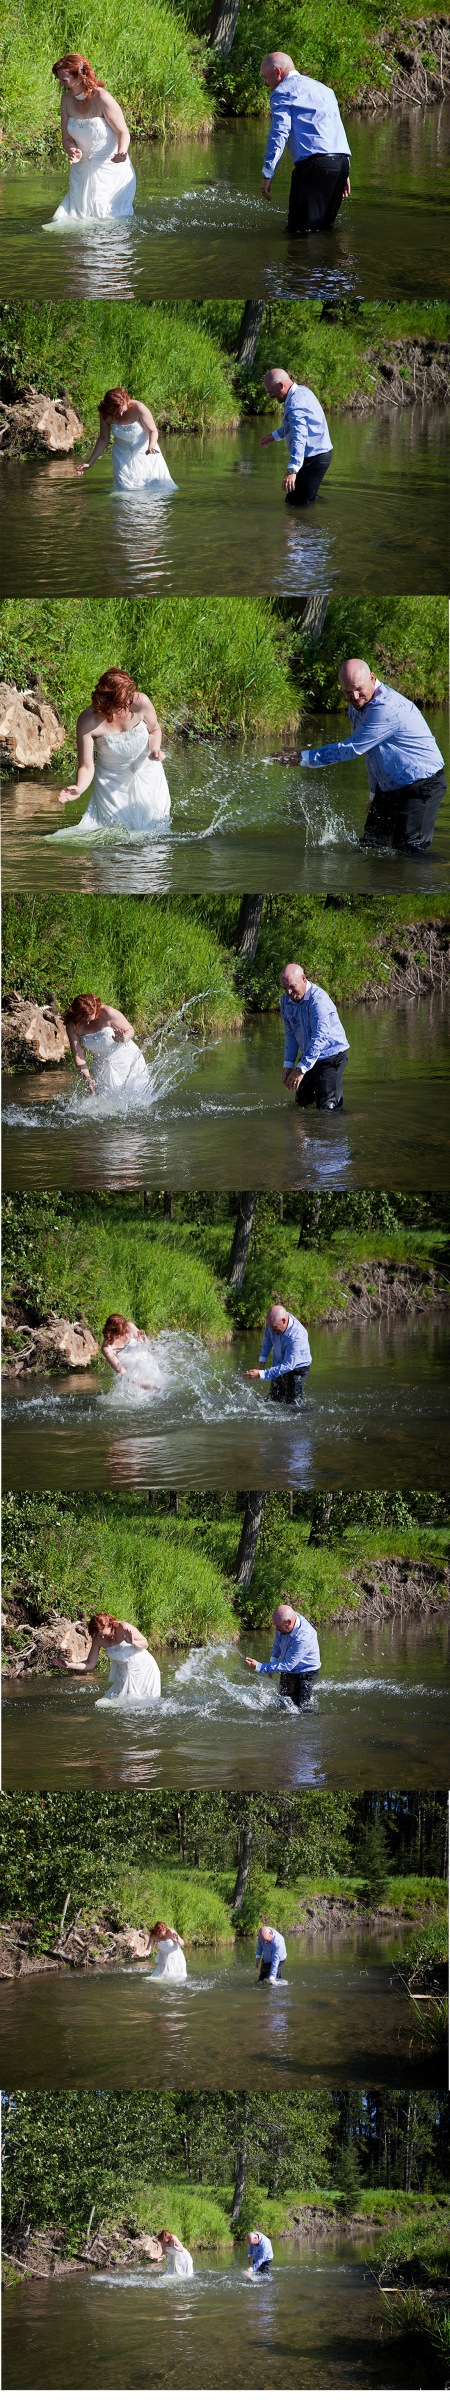 water fight on wedding day